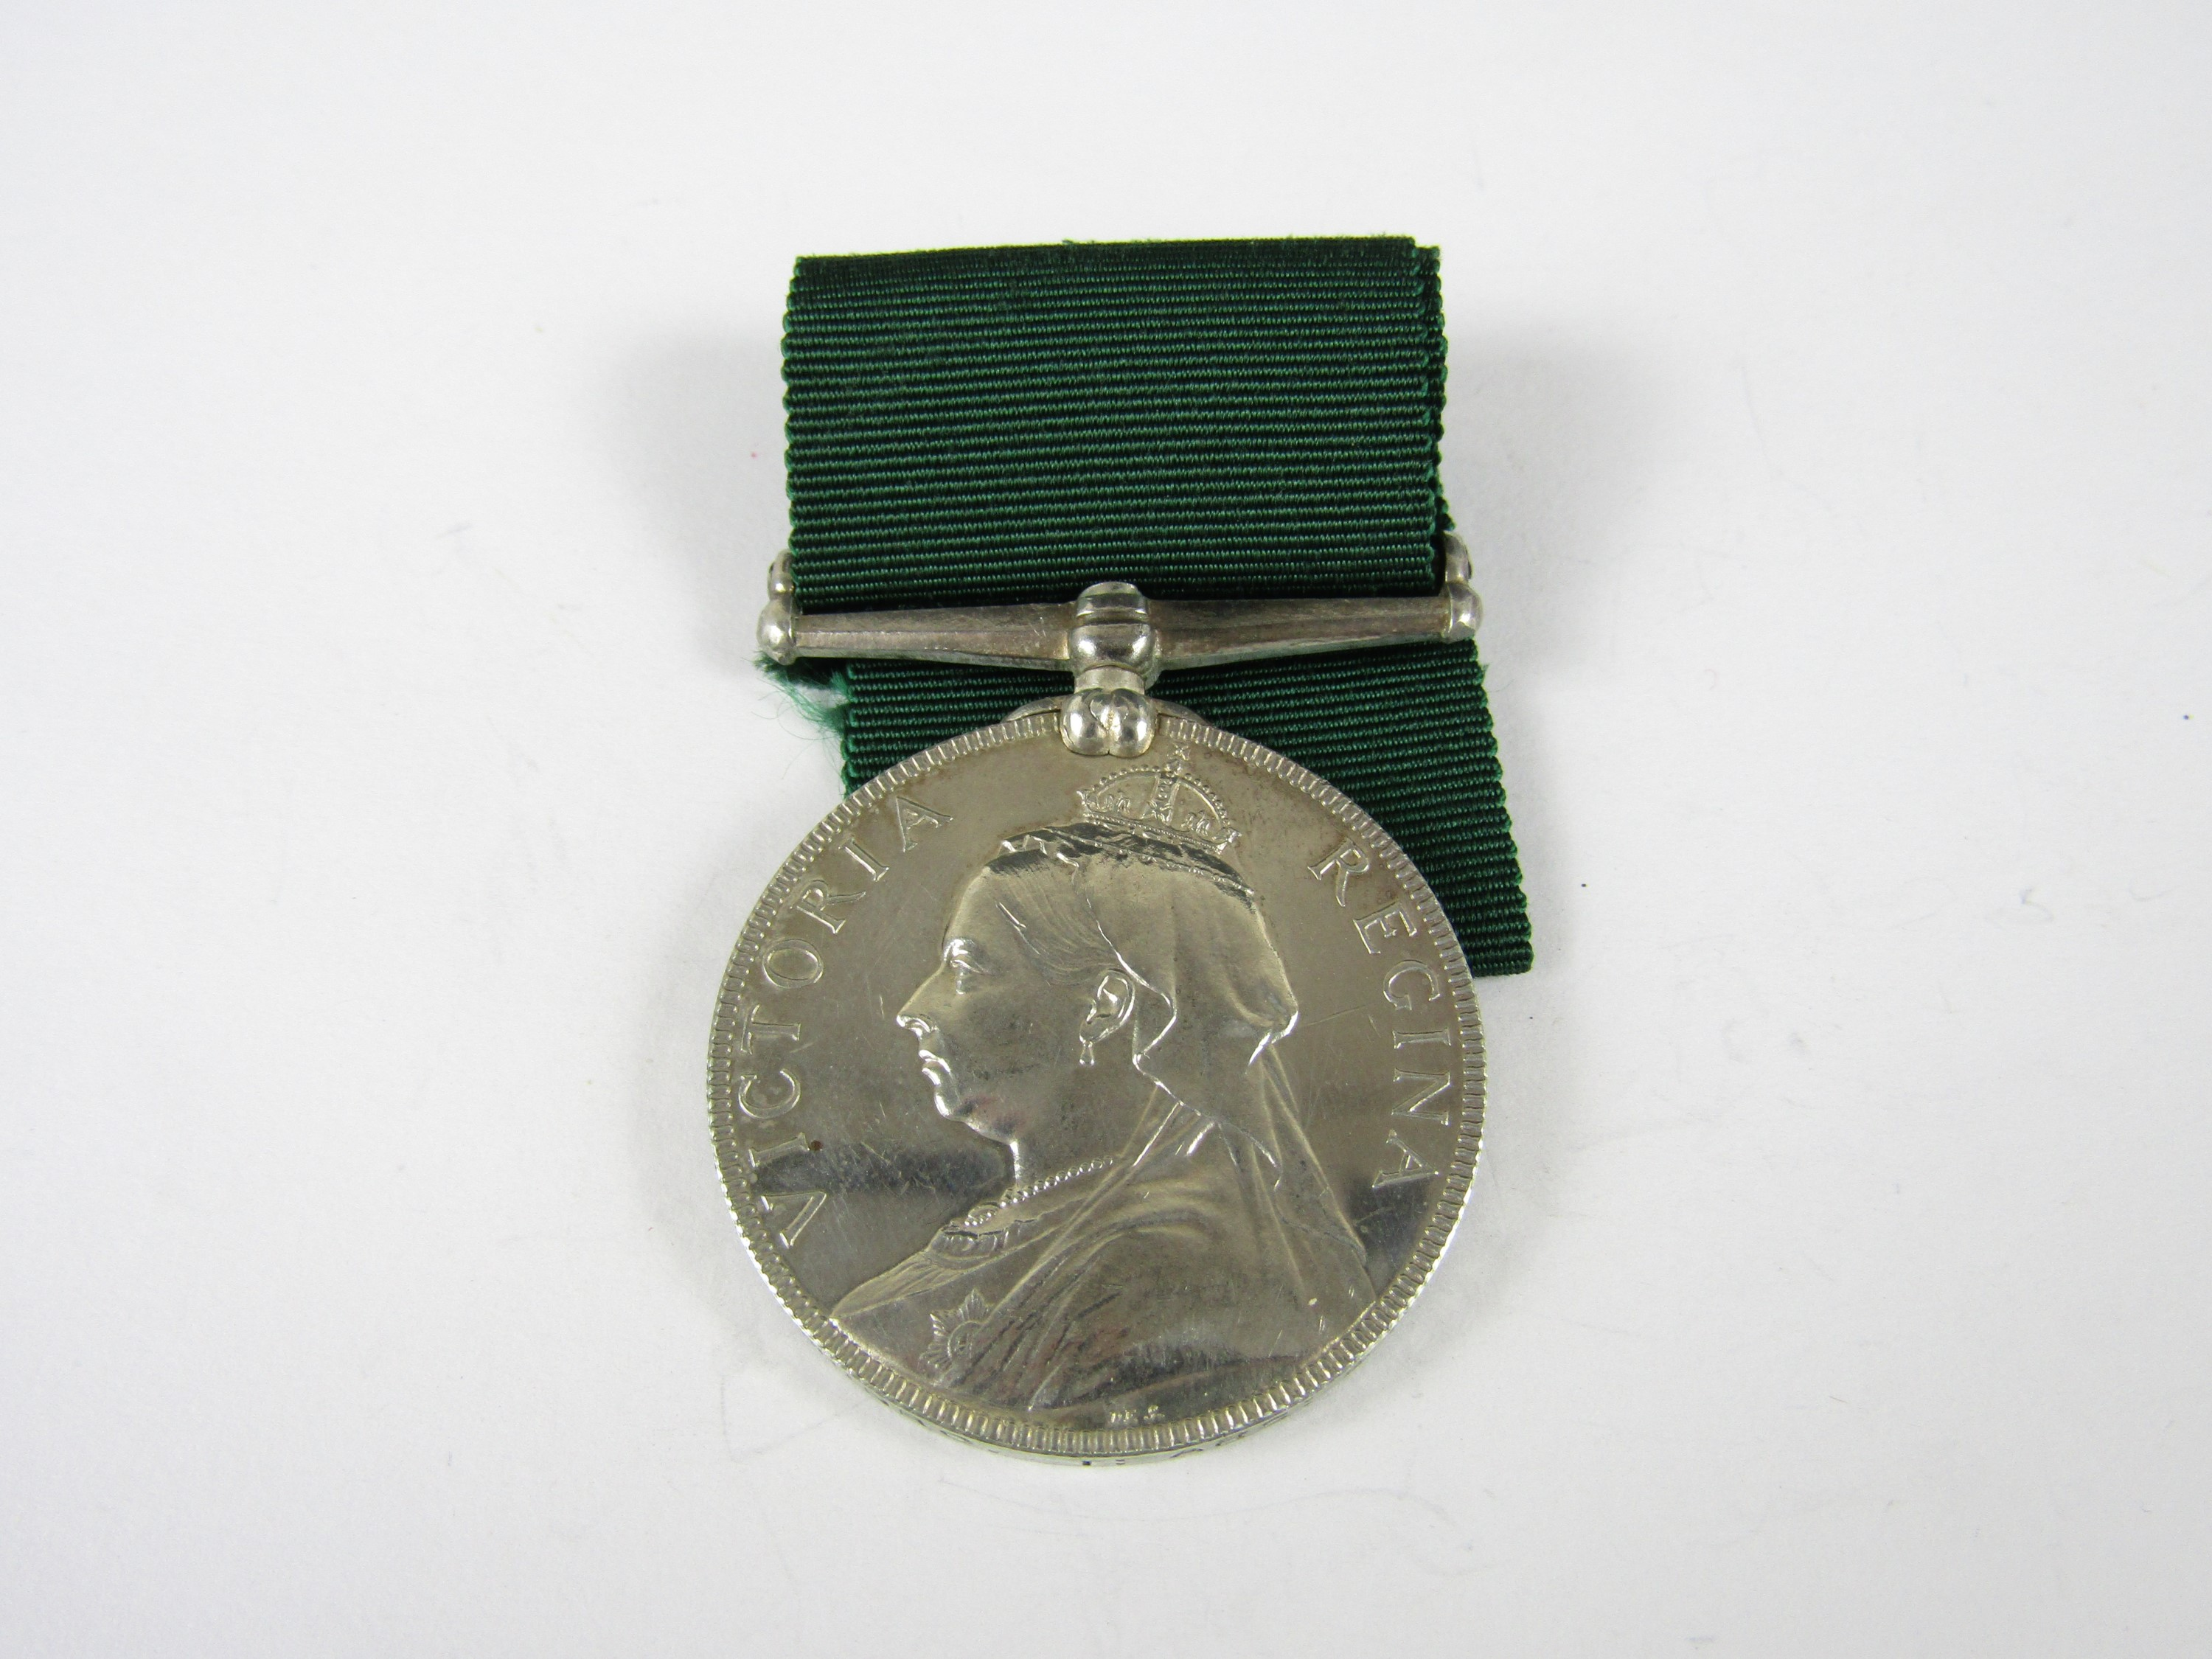 Lot 54 - A Victorian Volunteer Long Service medal to 123 Corp J Munro, 1 Arg & Bute Vol Art